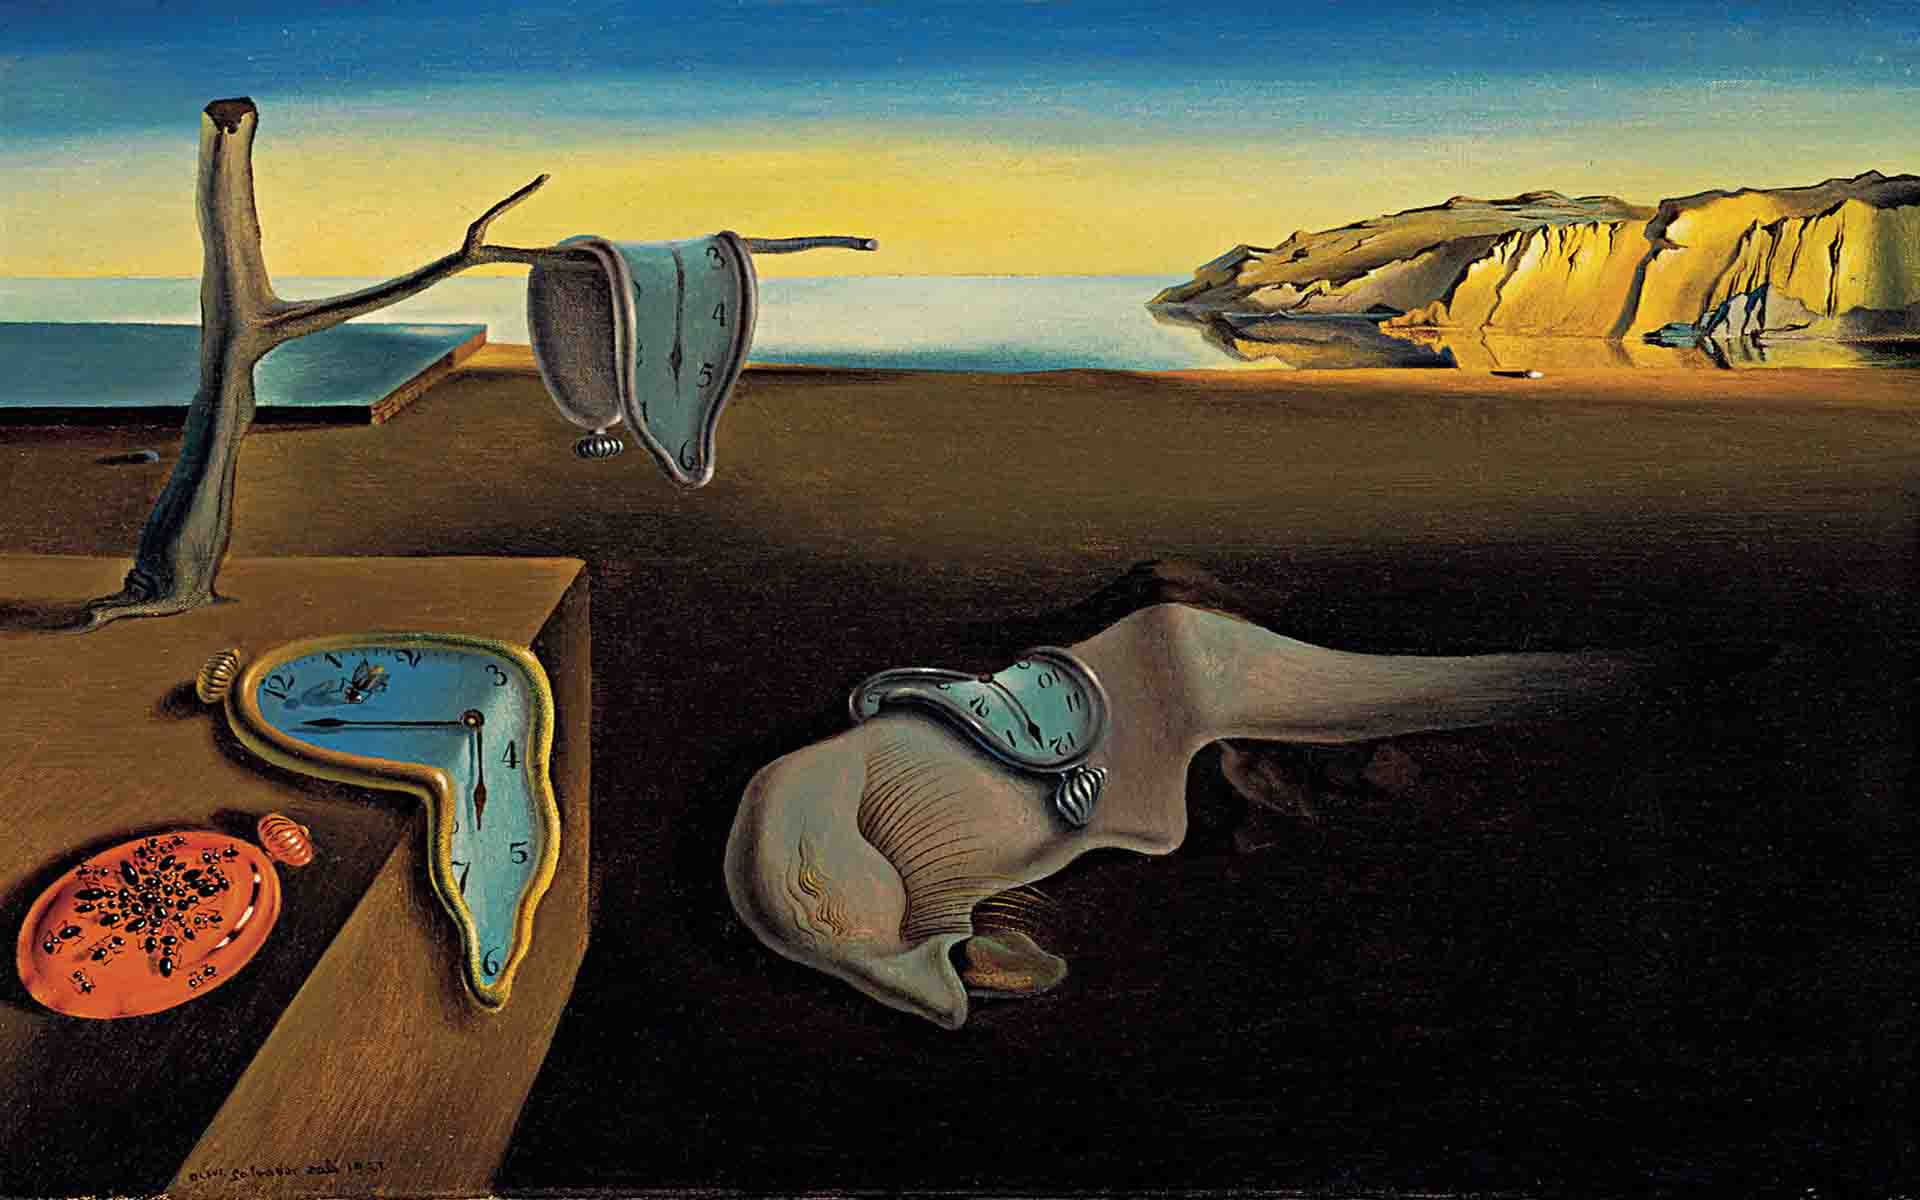 Salvador Dalí, La persistance de la mémoire, 1931 © Salvador Dalí, Gala-Salvador Dalí Foundation/Artists Rights Society (ARS), New York.